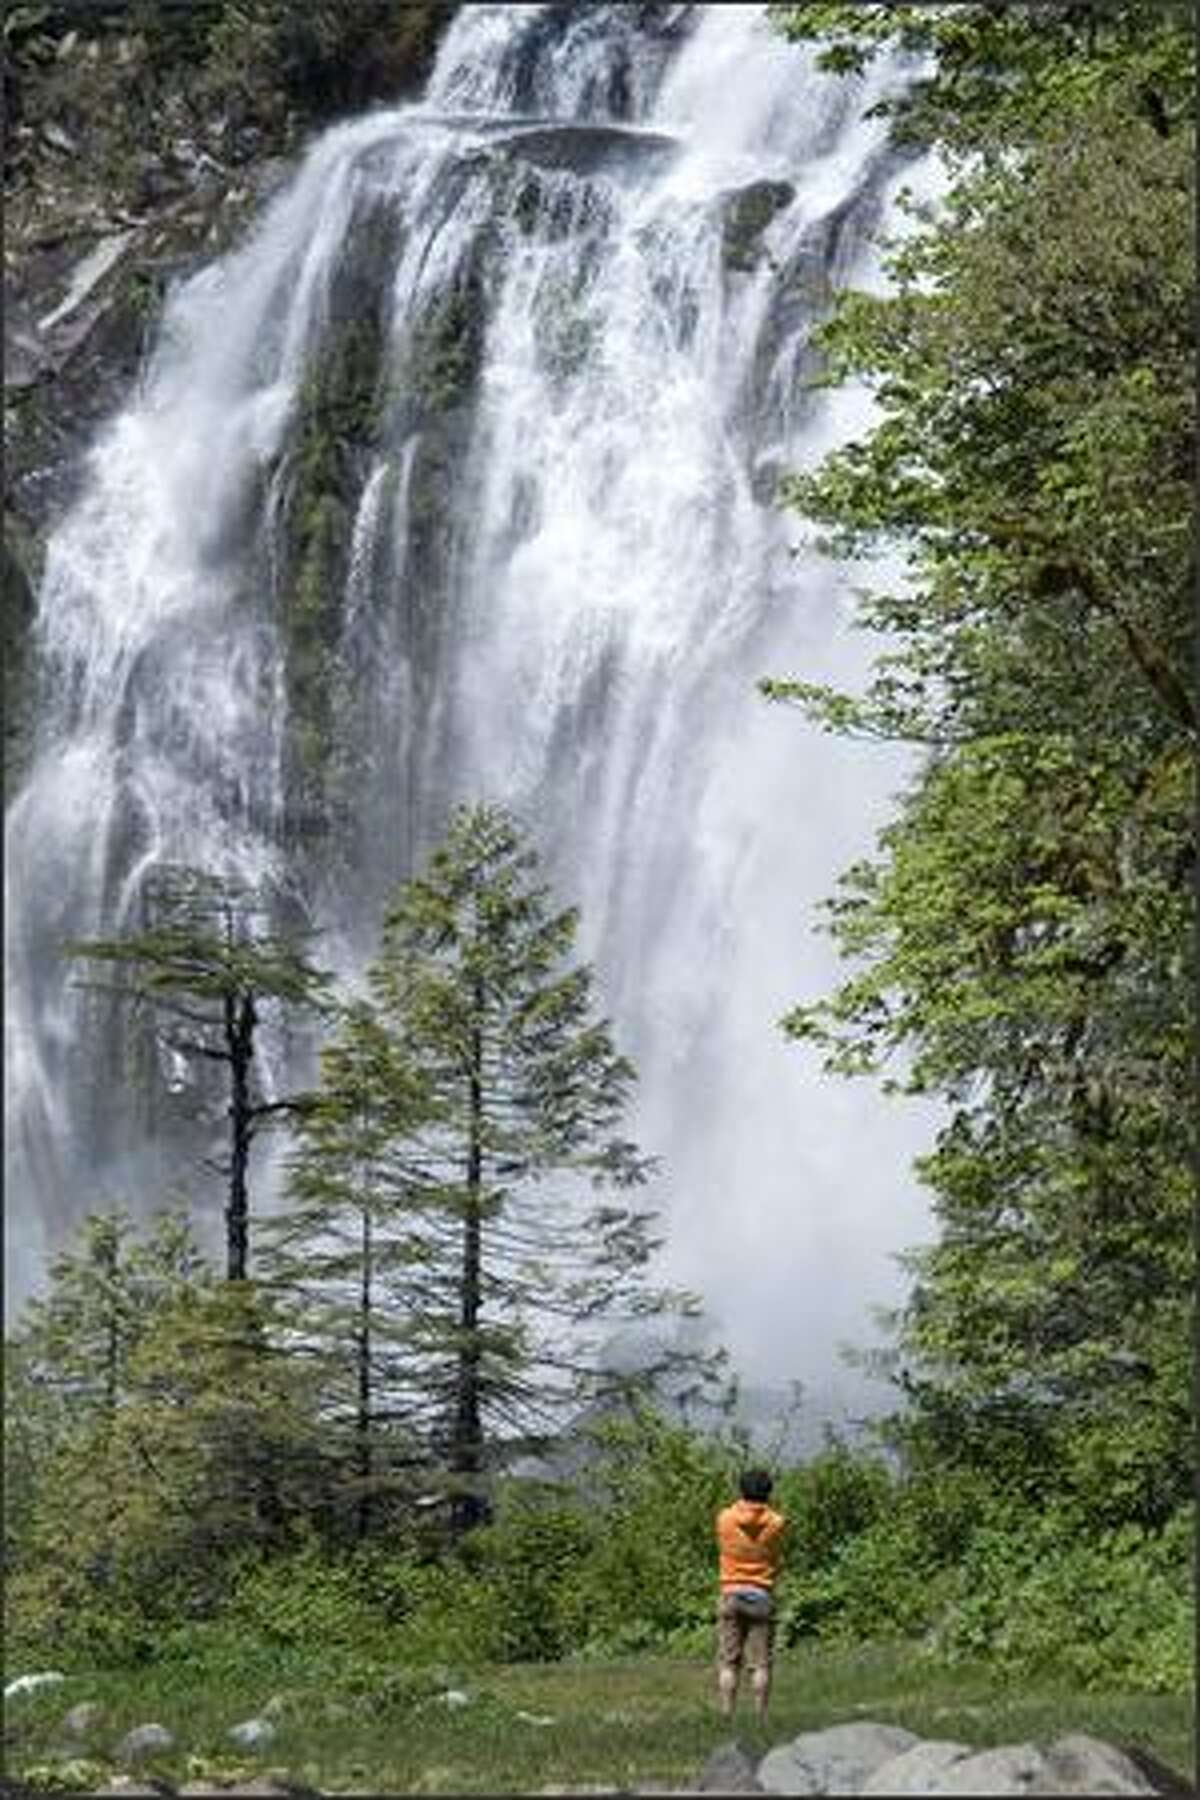 Chatterbox Falls thunders down 120 feet at the head of Princess Louisa Inlet, a 30-mile boat trip up Jervis Inlet from the West Coast Wilderness Lodge.